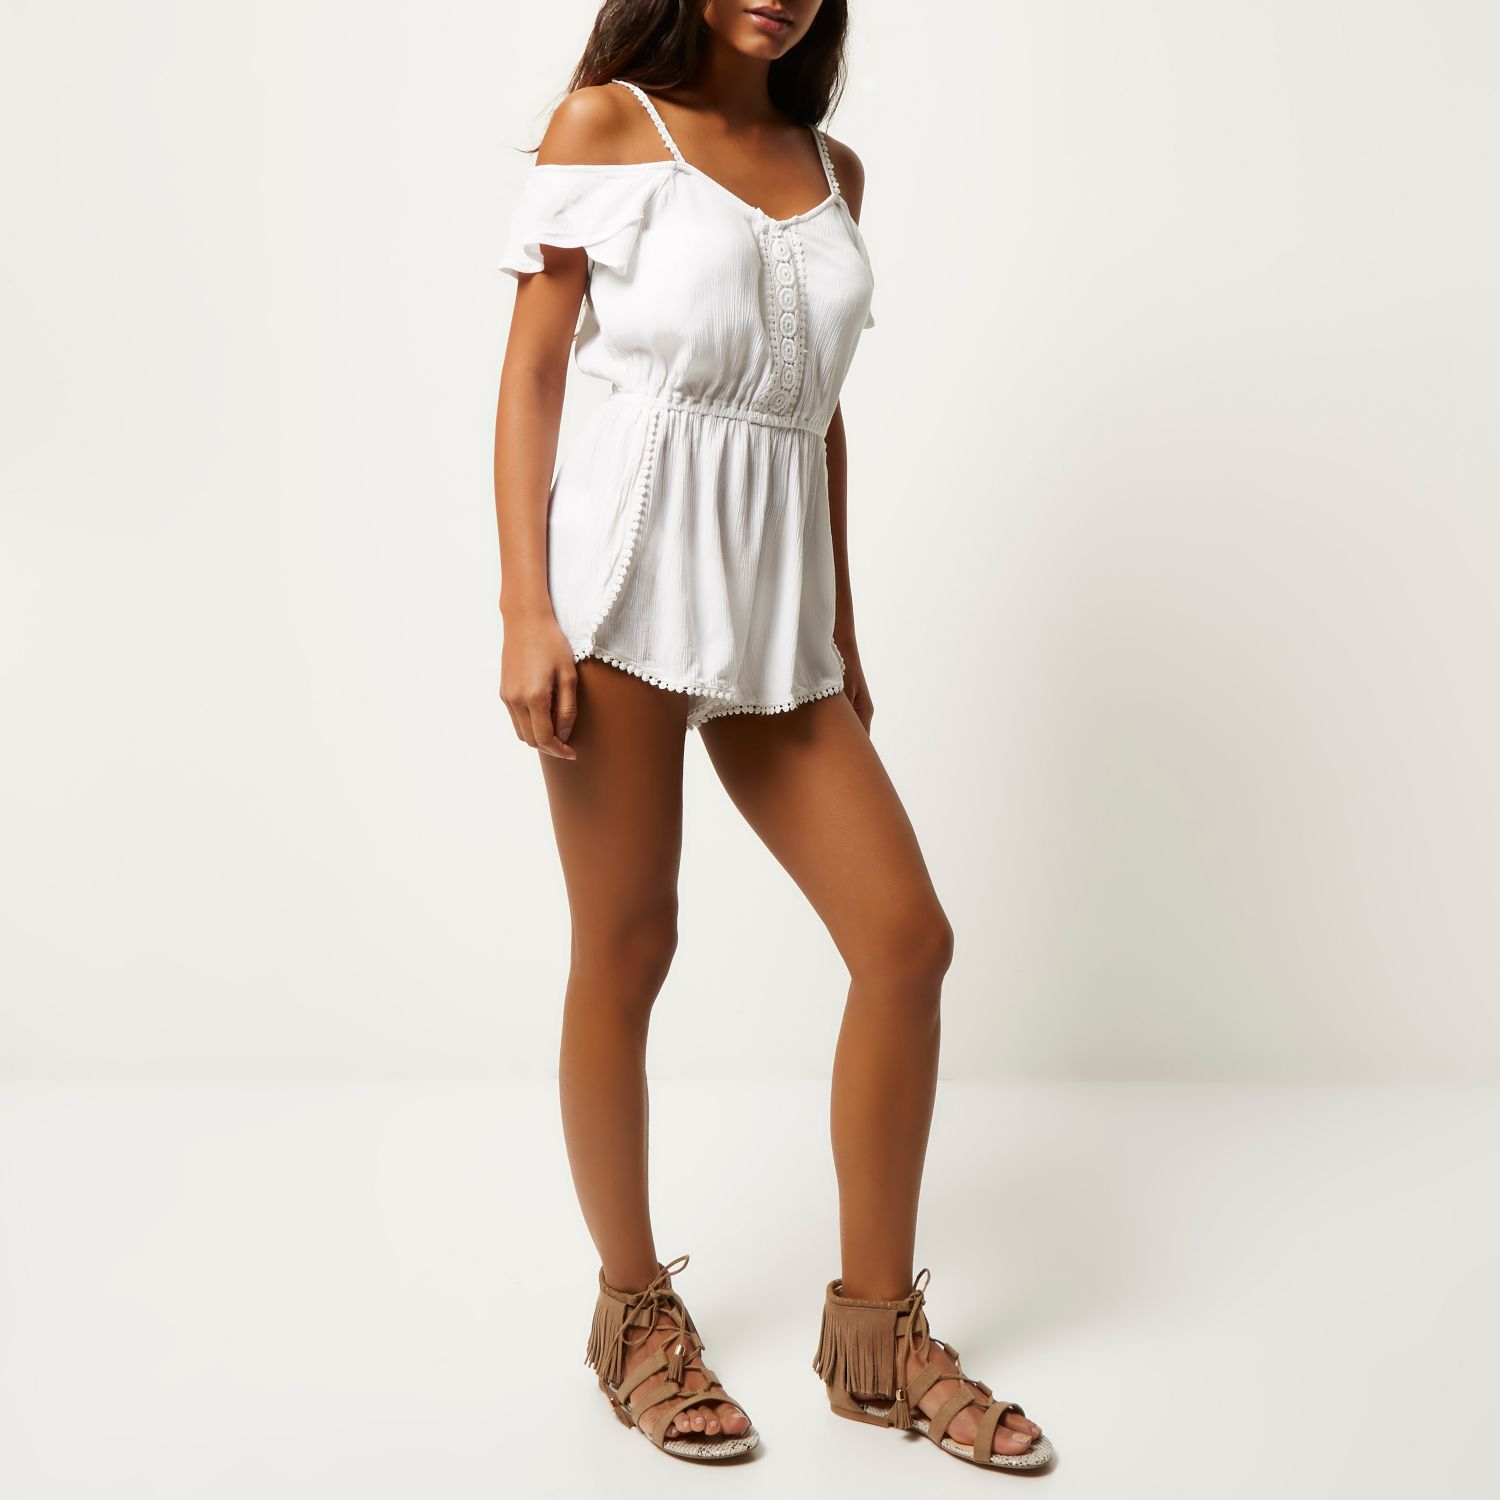 eef280b3da5 Lyst - River Island White Lace Trim Bardot Playsuit Cover-up in White